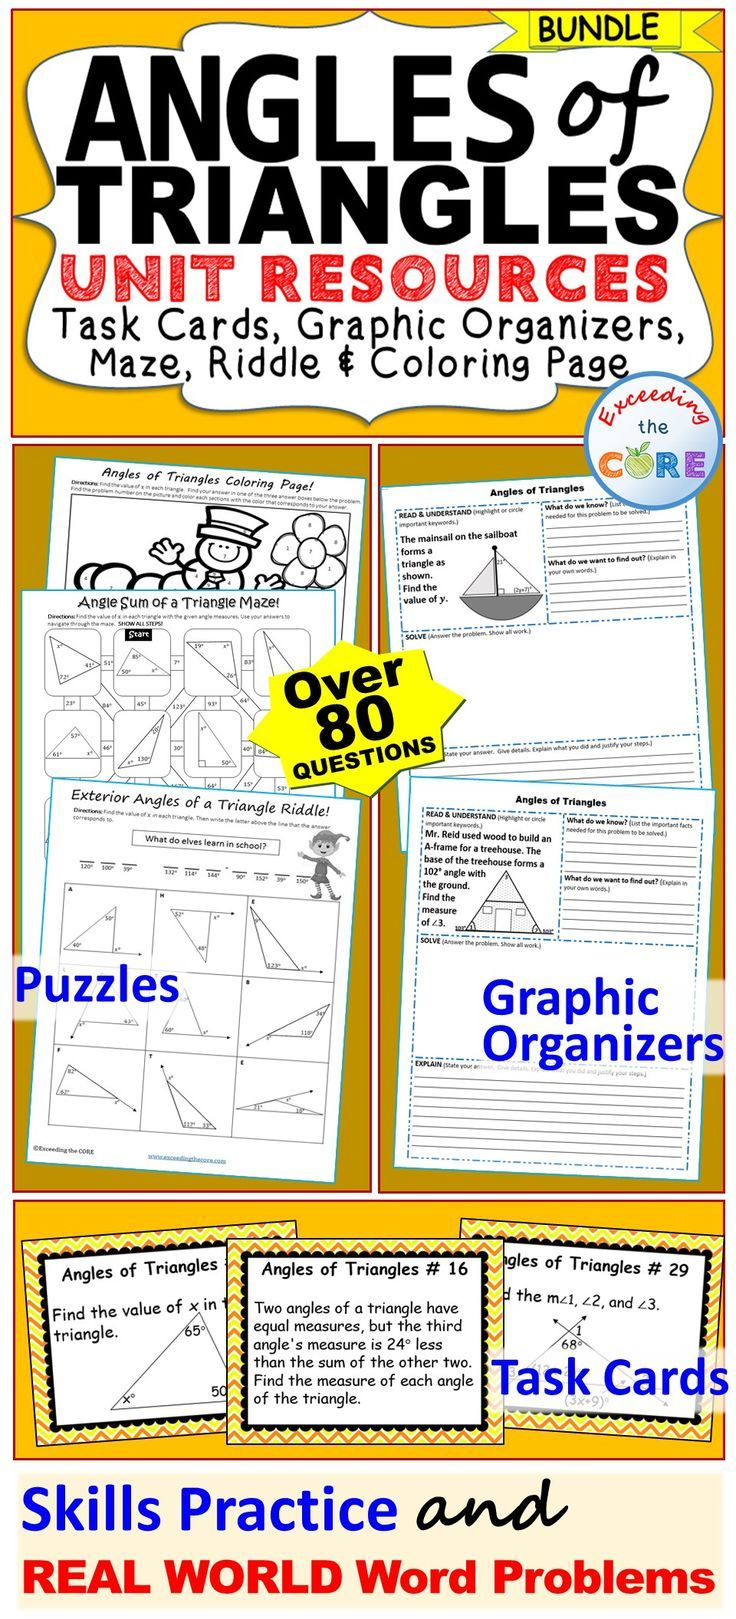 ANGLES OF TRIANGLES BUNDLE - This BUNDLE includes 40 task cards, 10 problem solving graphic organizers, 1 maze, 1 riddle, 1 coloring activity (over 80 skills practice and word problems). The resources in this bundle are perfect for warm-ups, cooperative learning, spiral review, math centers, assessment prep and homework. Topics included: Angle Sum of a Triangle, Interior Angles of a Triangle, Exterior Angle of a Triangle, Classify Triangle by its Angles 8th grade math common core 8.G.5